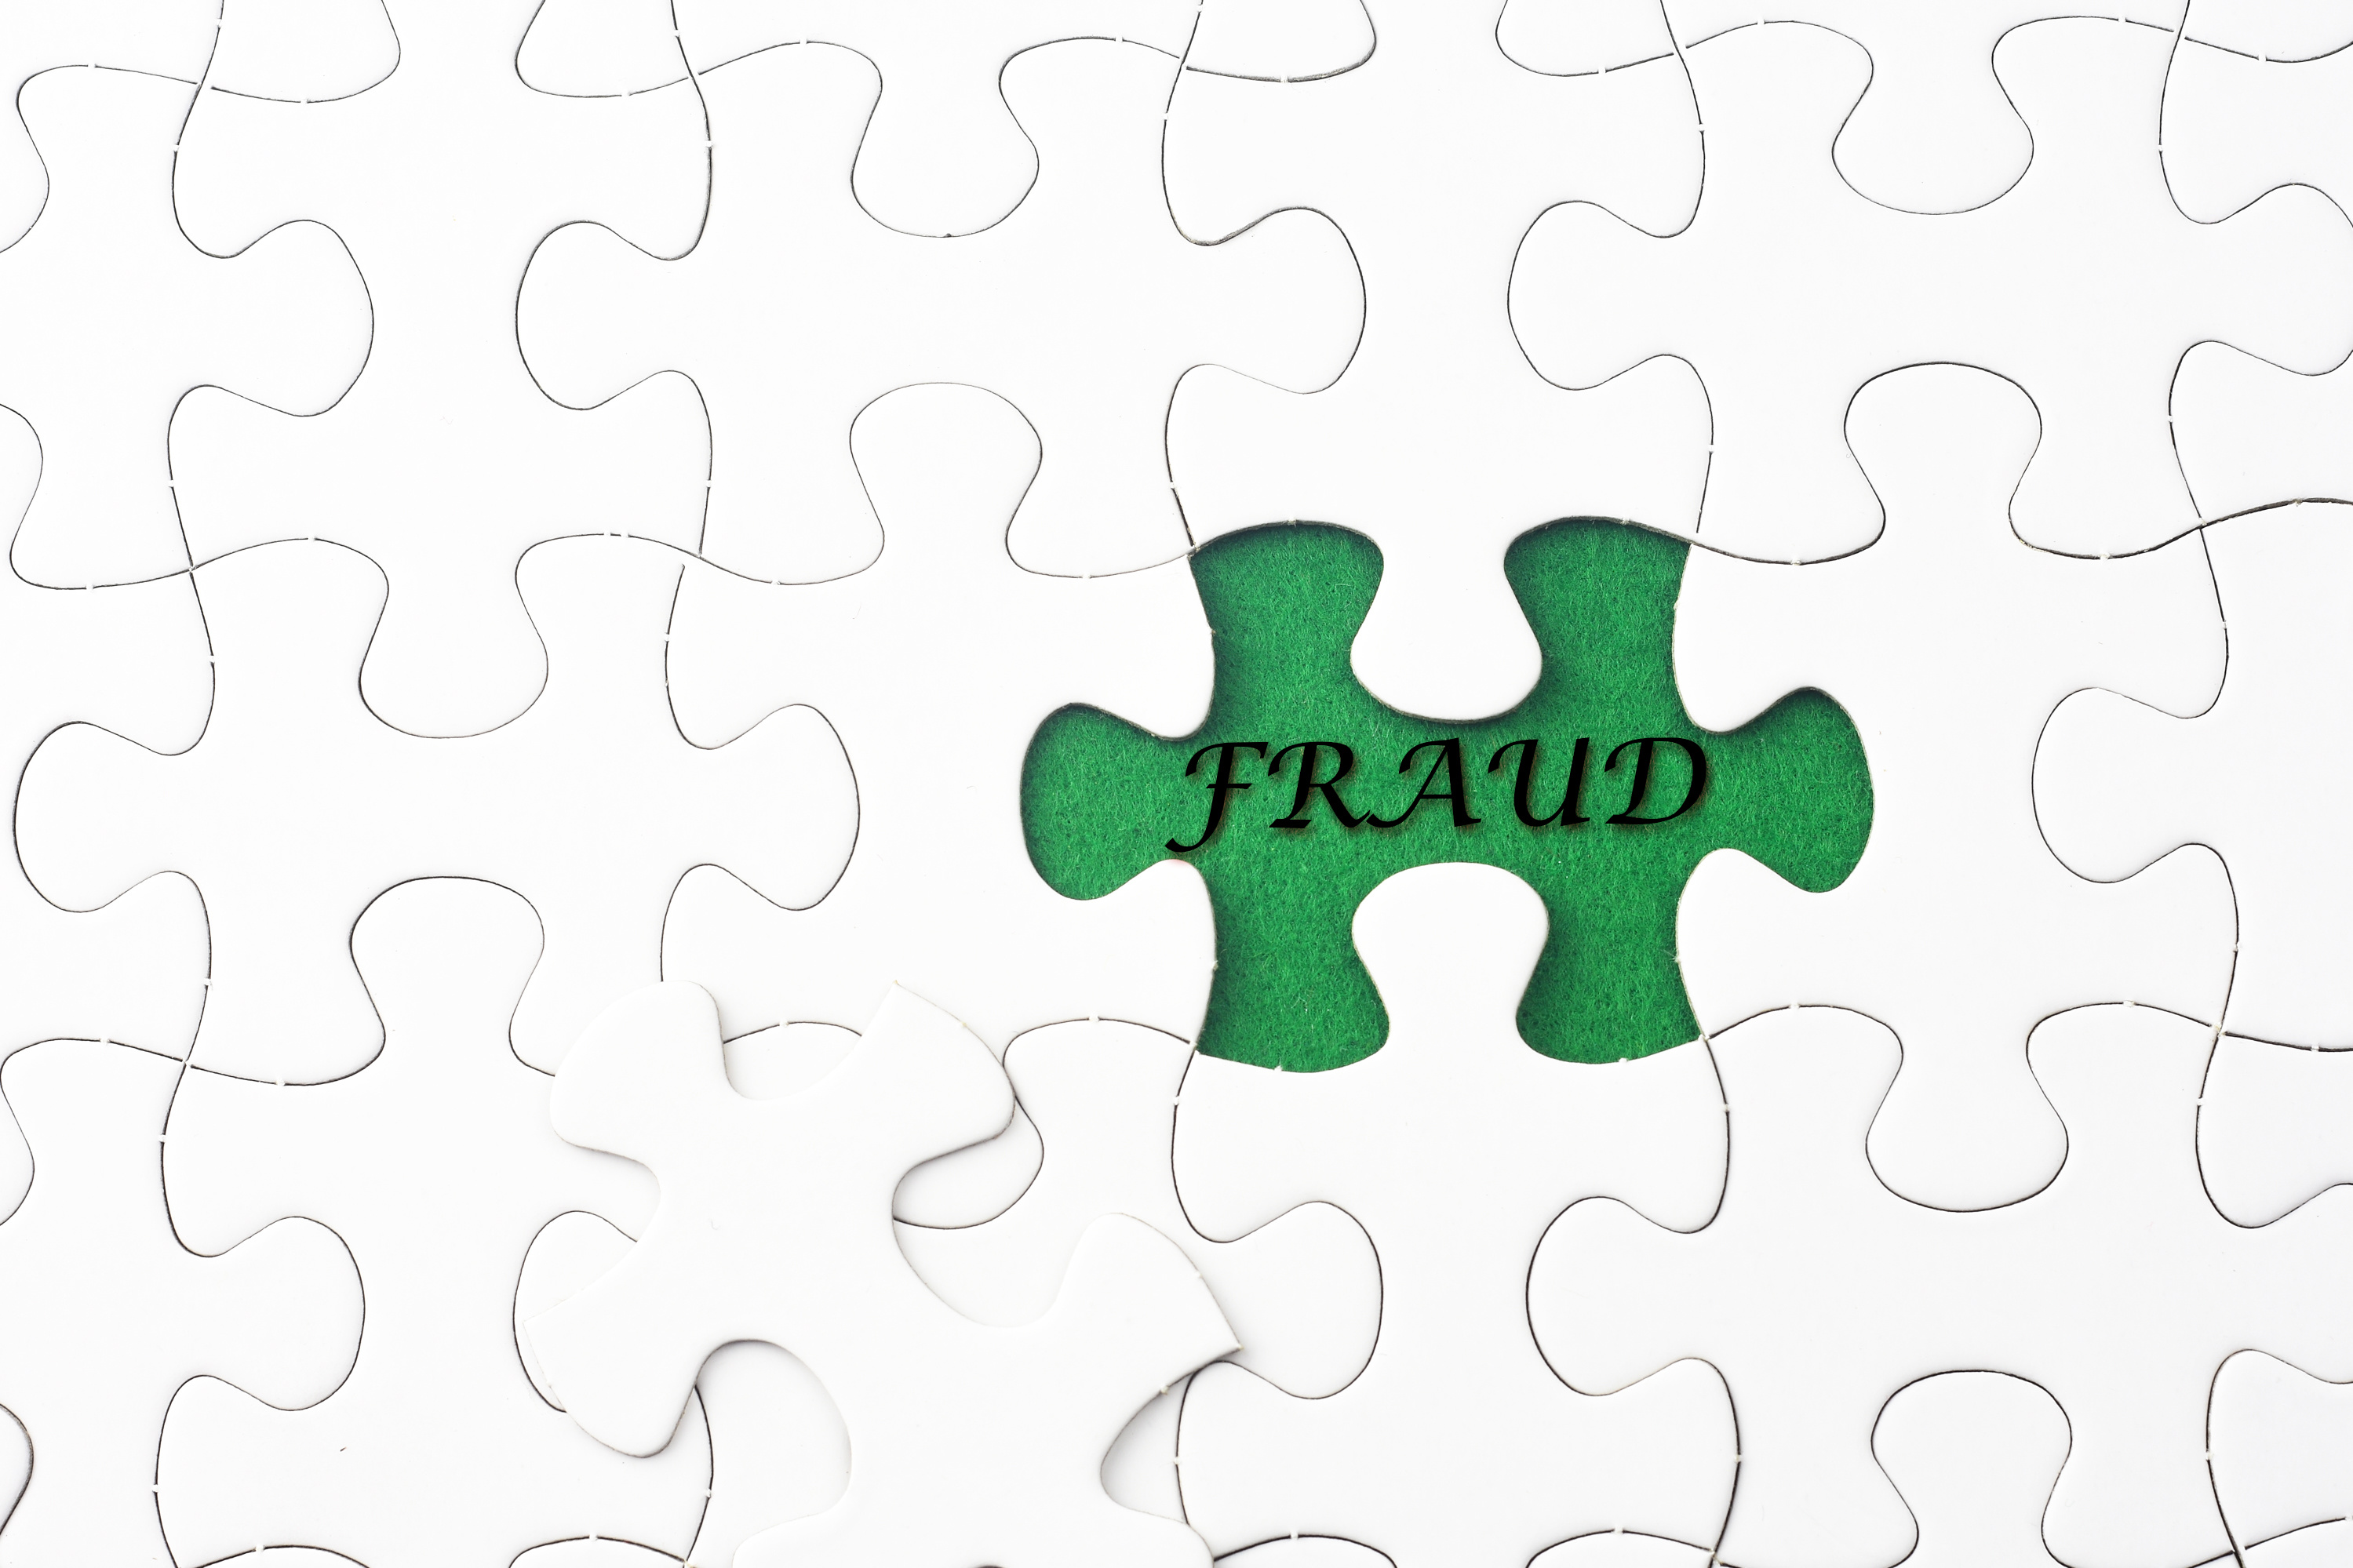 Expense Fraud Puzzle